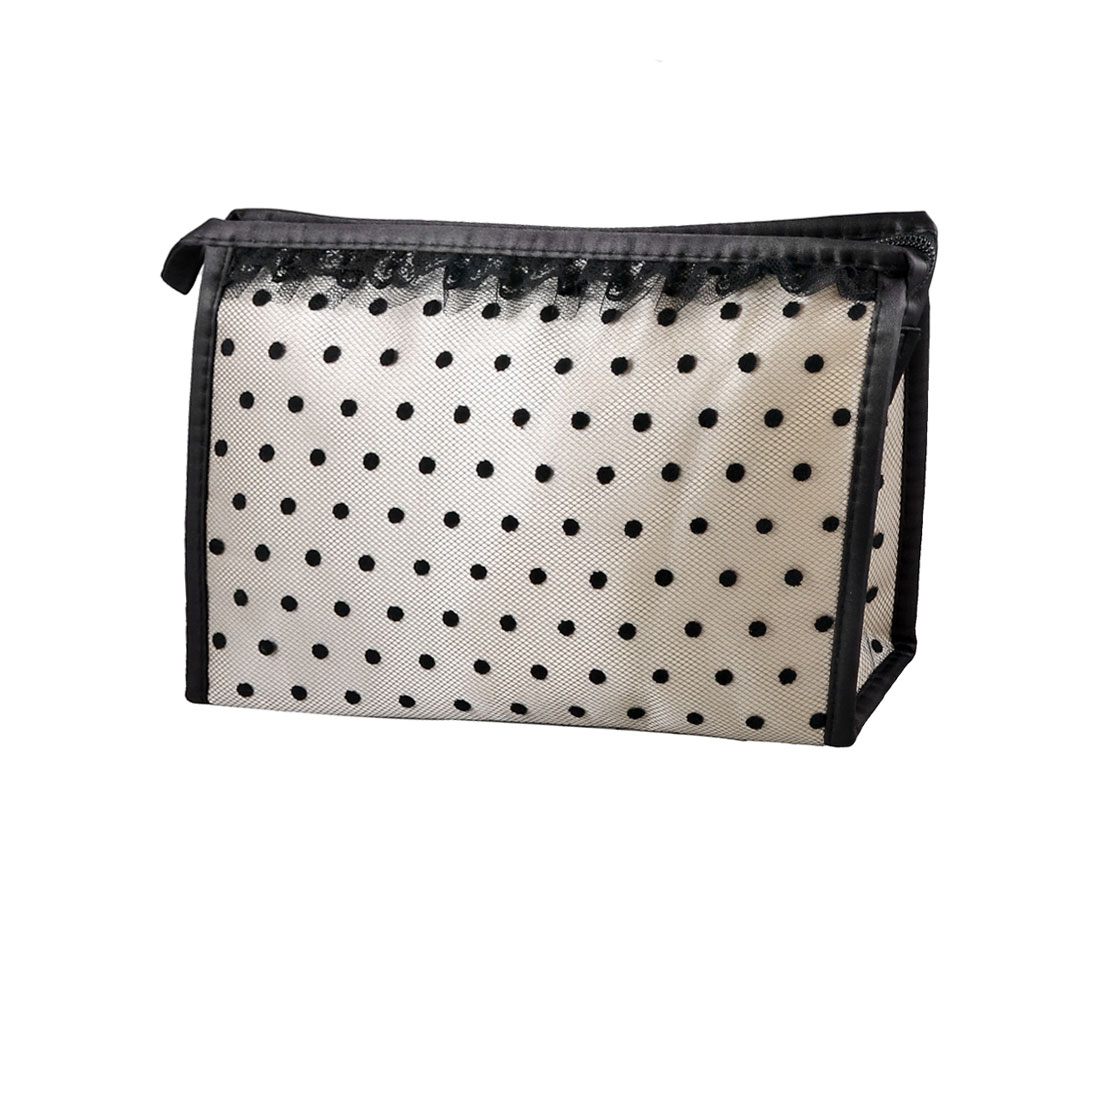 Zip up Light Gray Black Dotted Mesh Lace Mirror Makeup Cosmetic Bag Case Holder